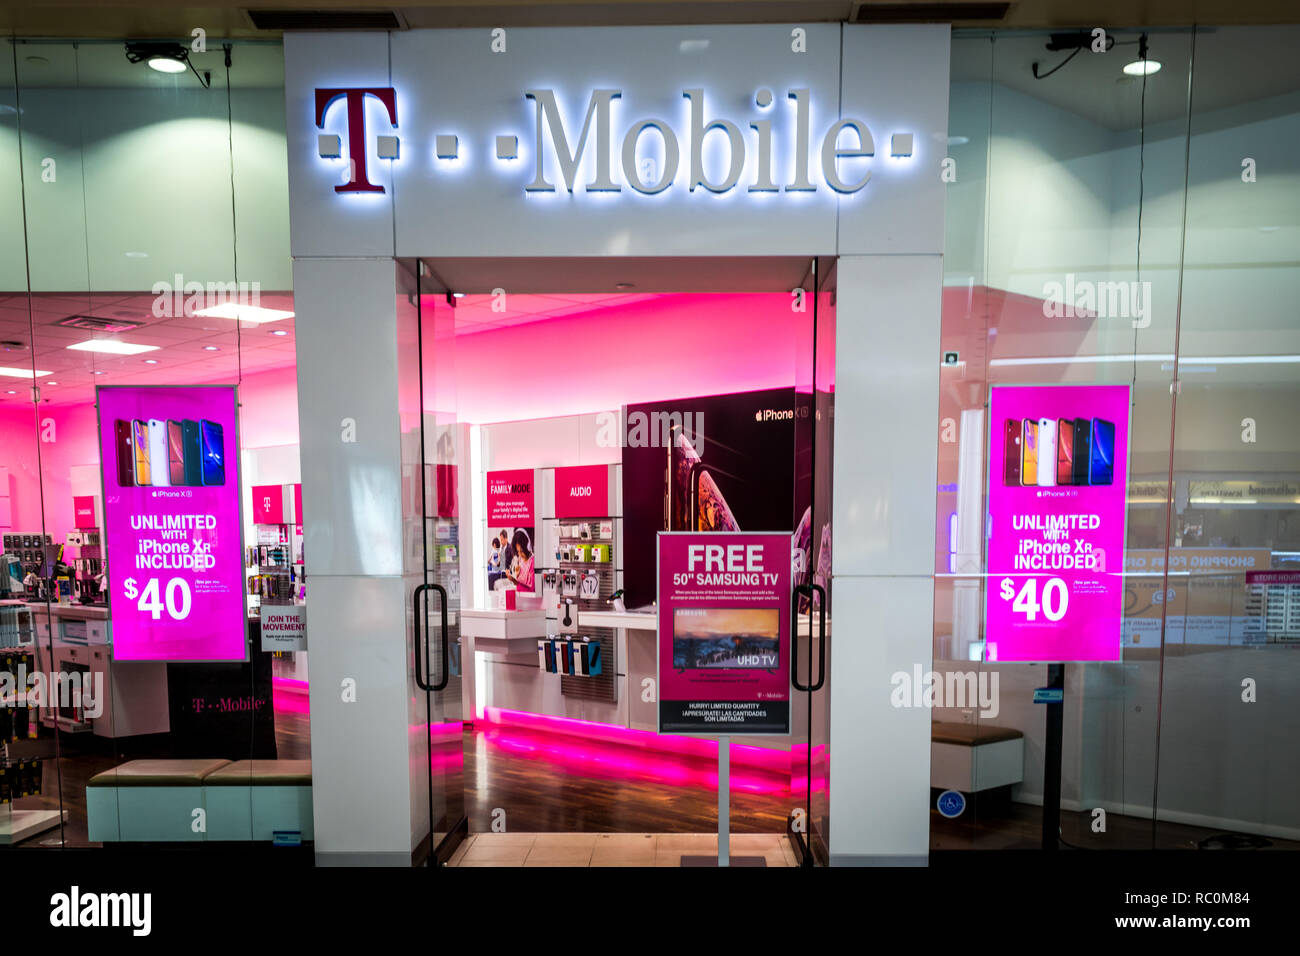 Rockaway Nj January 11 2019 T Mobile Retail Store At The